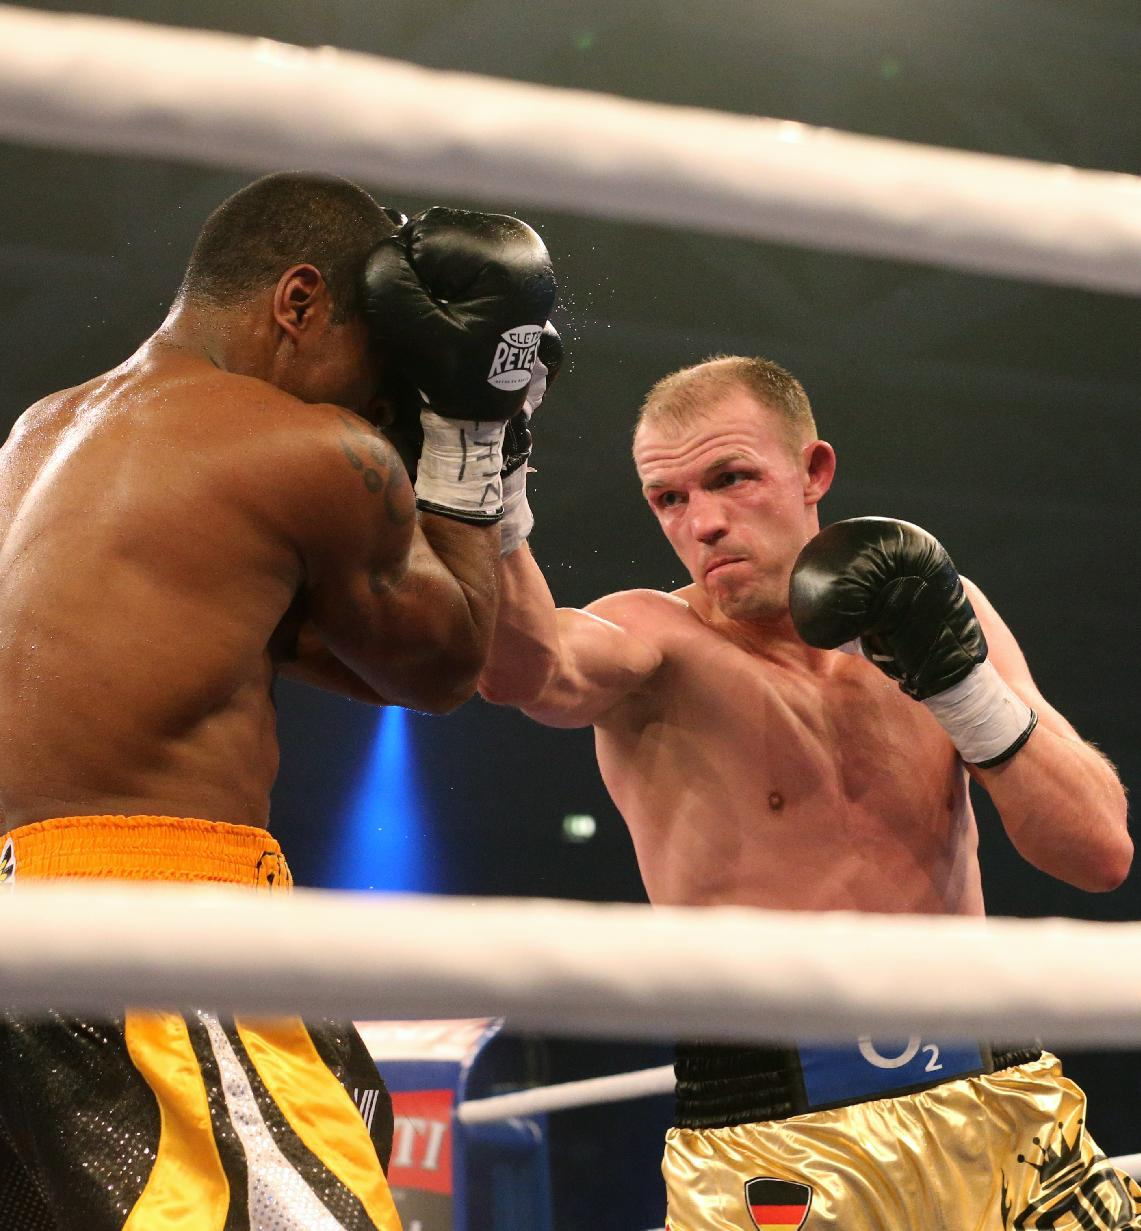 In this picture taken Saturday evening Dec. 14, 2013, German  boxer Juergen Braehmer, right,  punches  US Marcus Oliveira   during their title bout in Neubrandenburg, eastern Germany. Germany's Juergen Braehmer defeated Marcus Oliveira by unanimous decision to take the vacant WBA world light heavyweight title on Saturday night. The judges scored it  in favor of the 35-year-old Braehmer, a former WBO champion, who withstood a late barrage from the previously undefeated American in the last round to claim his second world title. The title had been vacant since Kazakhstan's Beibut Shumenov was declared the WBA's